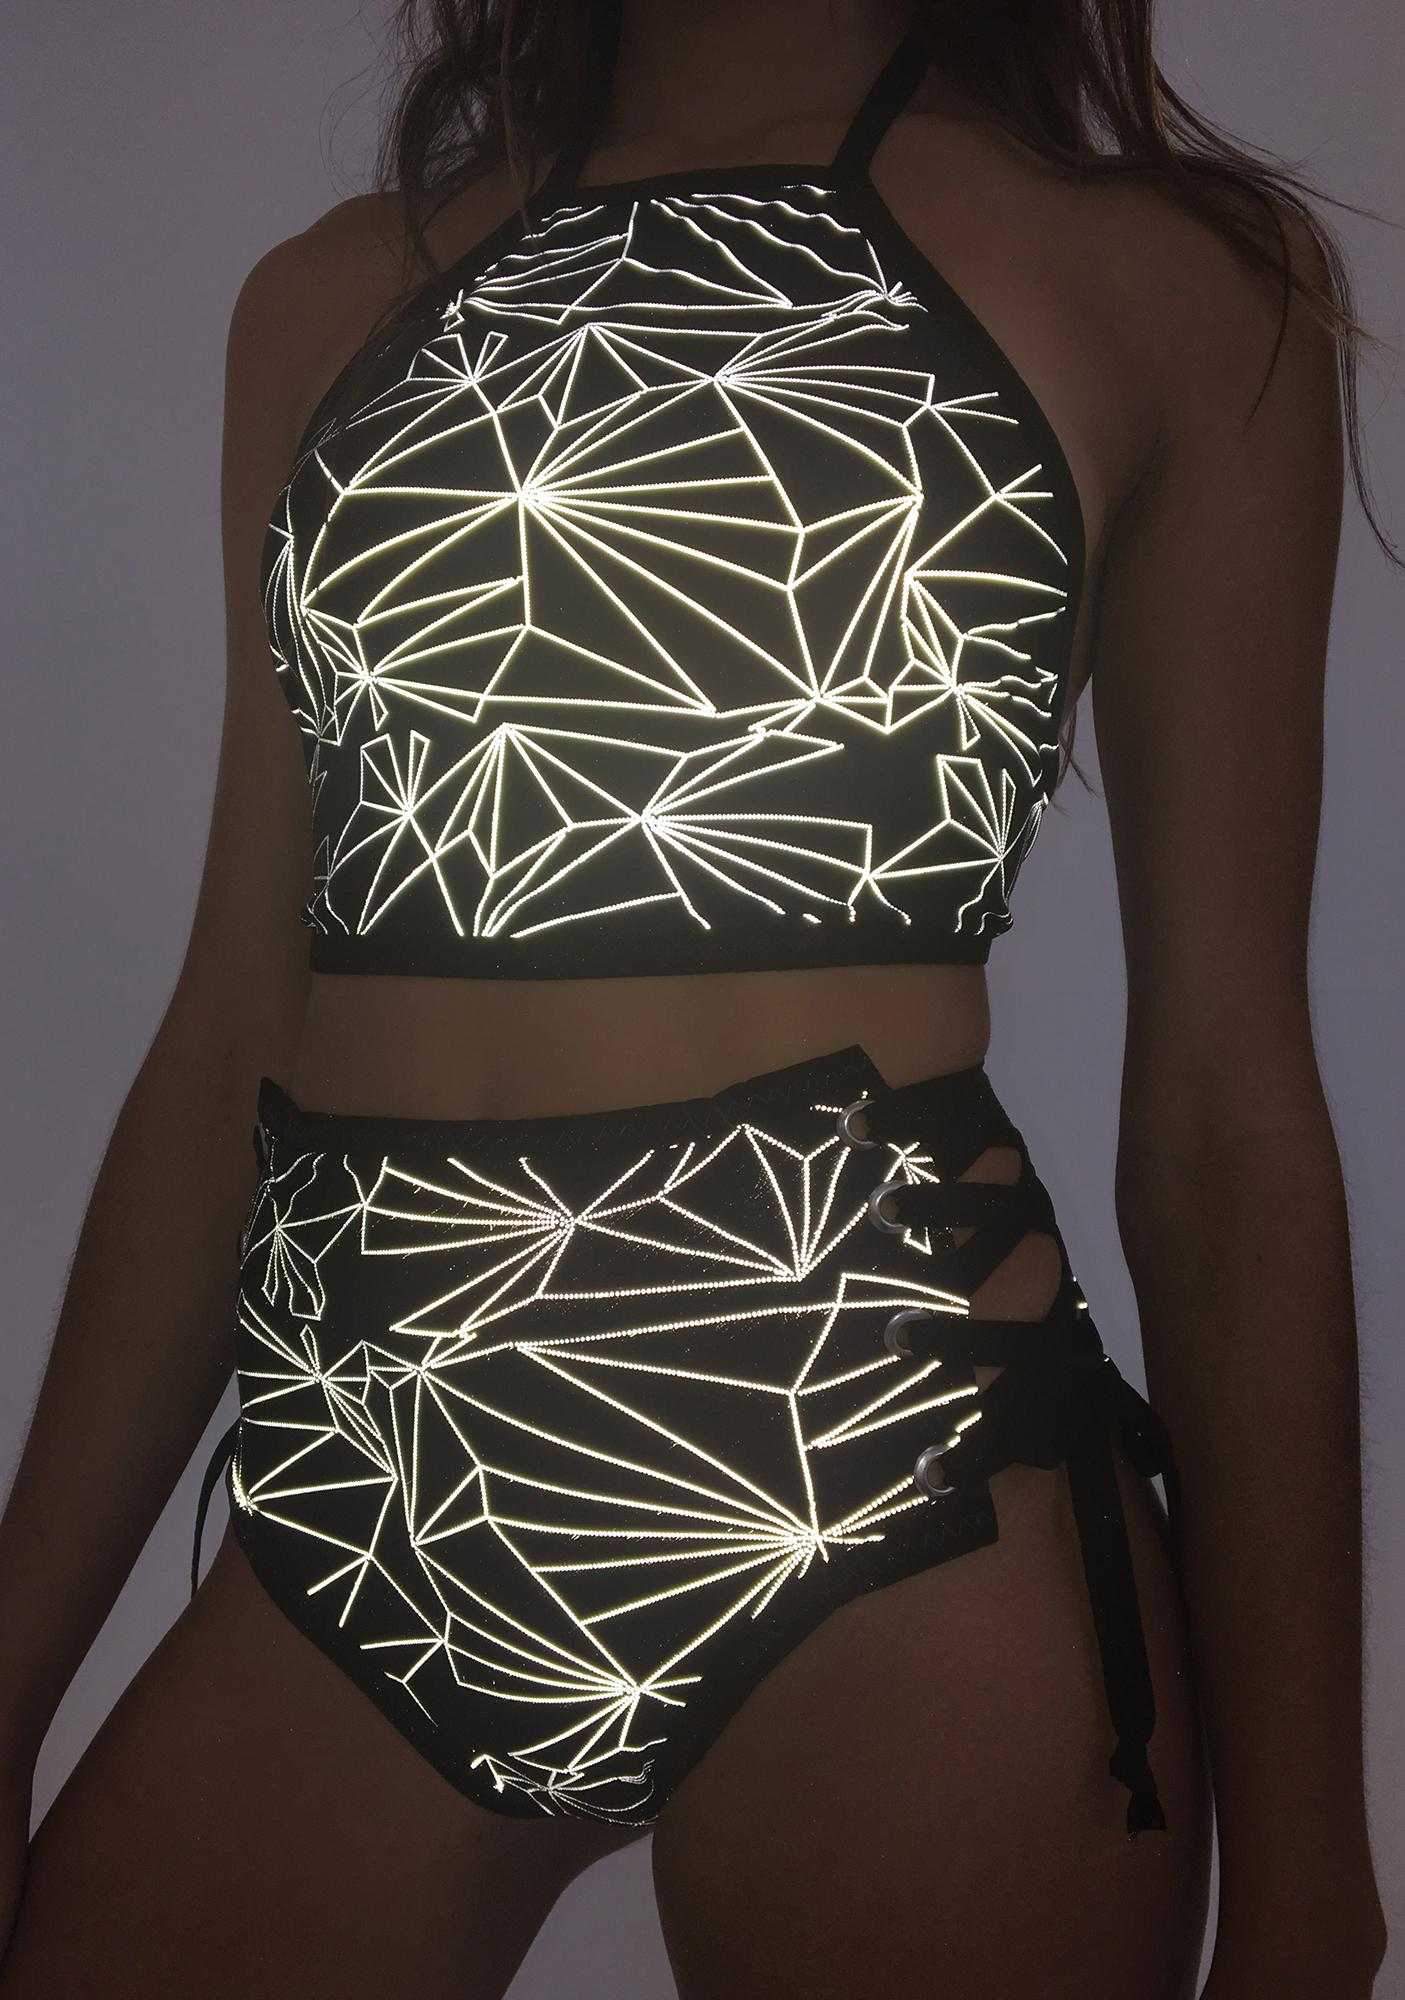 The Lyte Couture Light Up High Waist Shorts